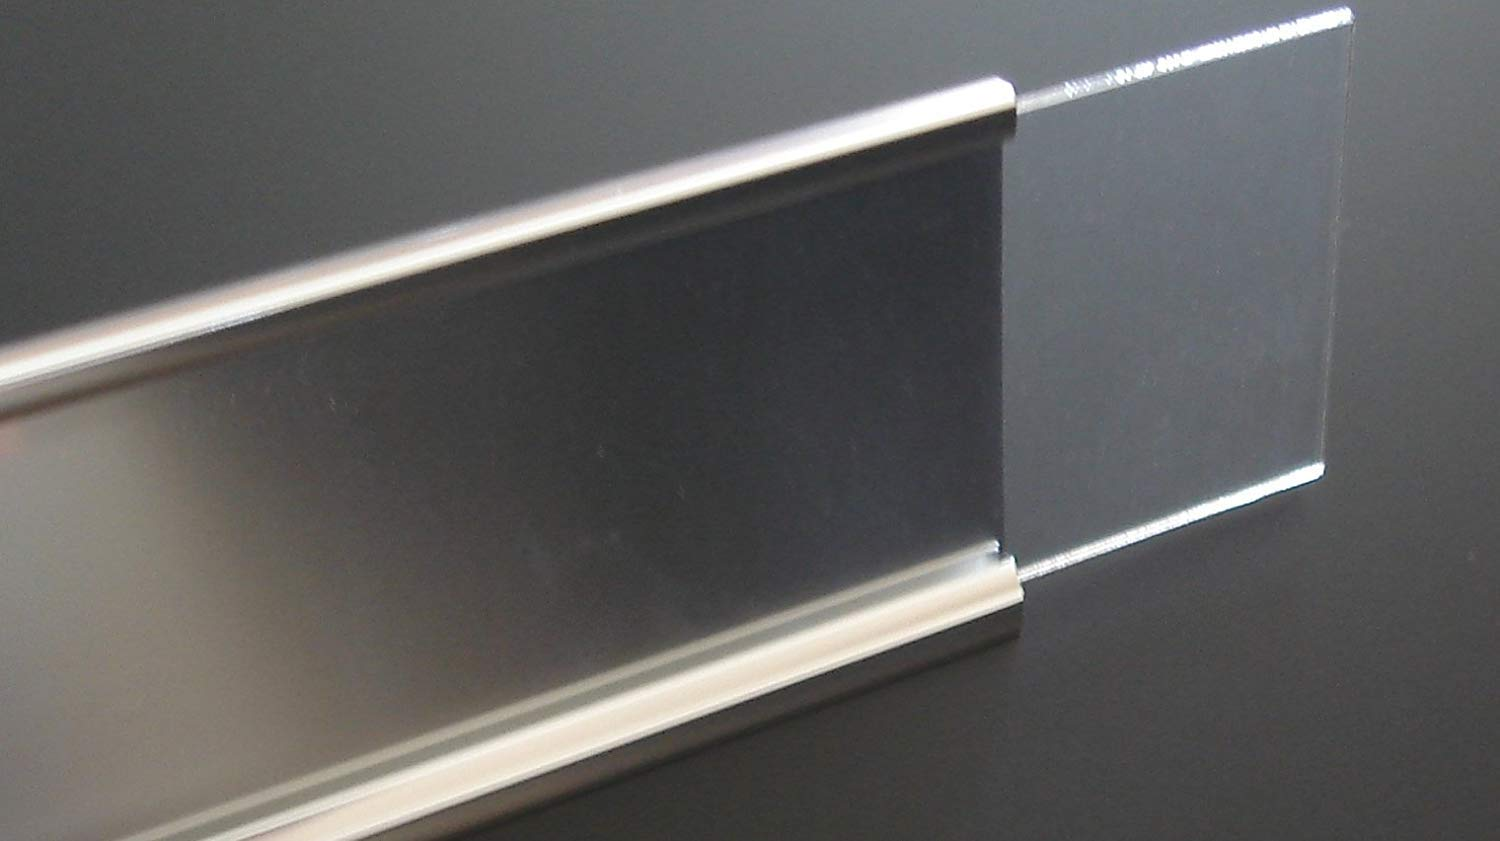 Set of 100 2x8 Wall Name Plate Holder with Clear Plastic Insert (Make Your Own Name Plates) (Matte Silver)